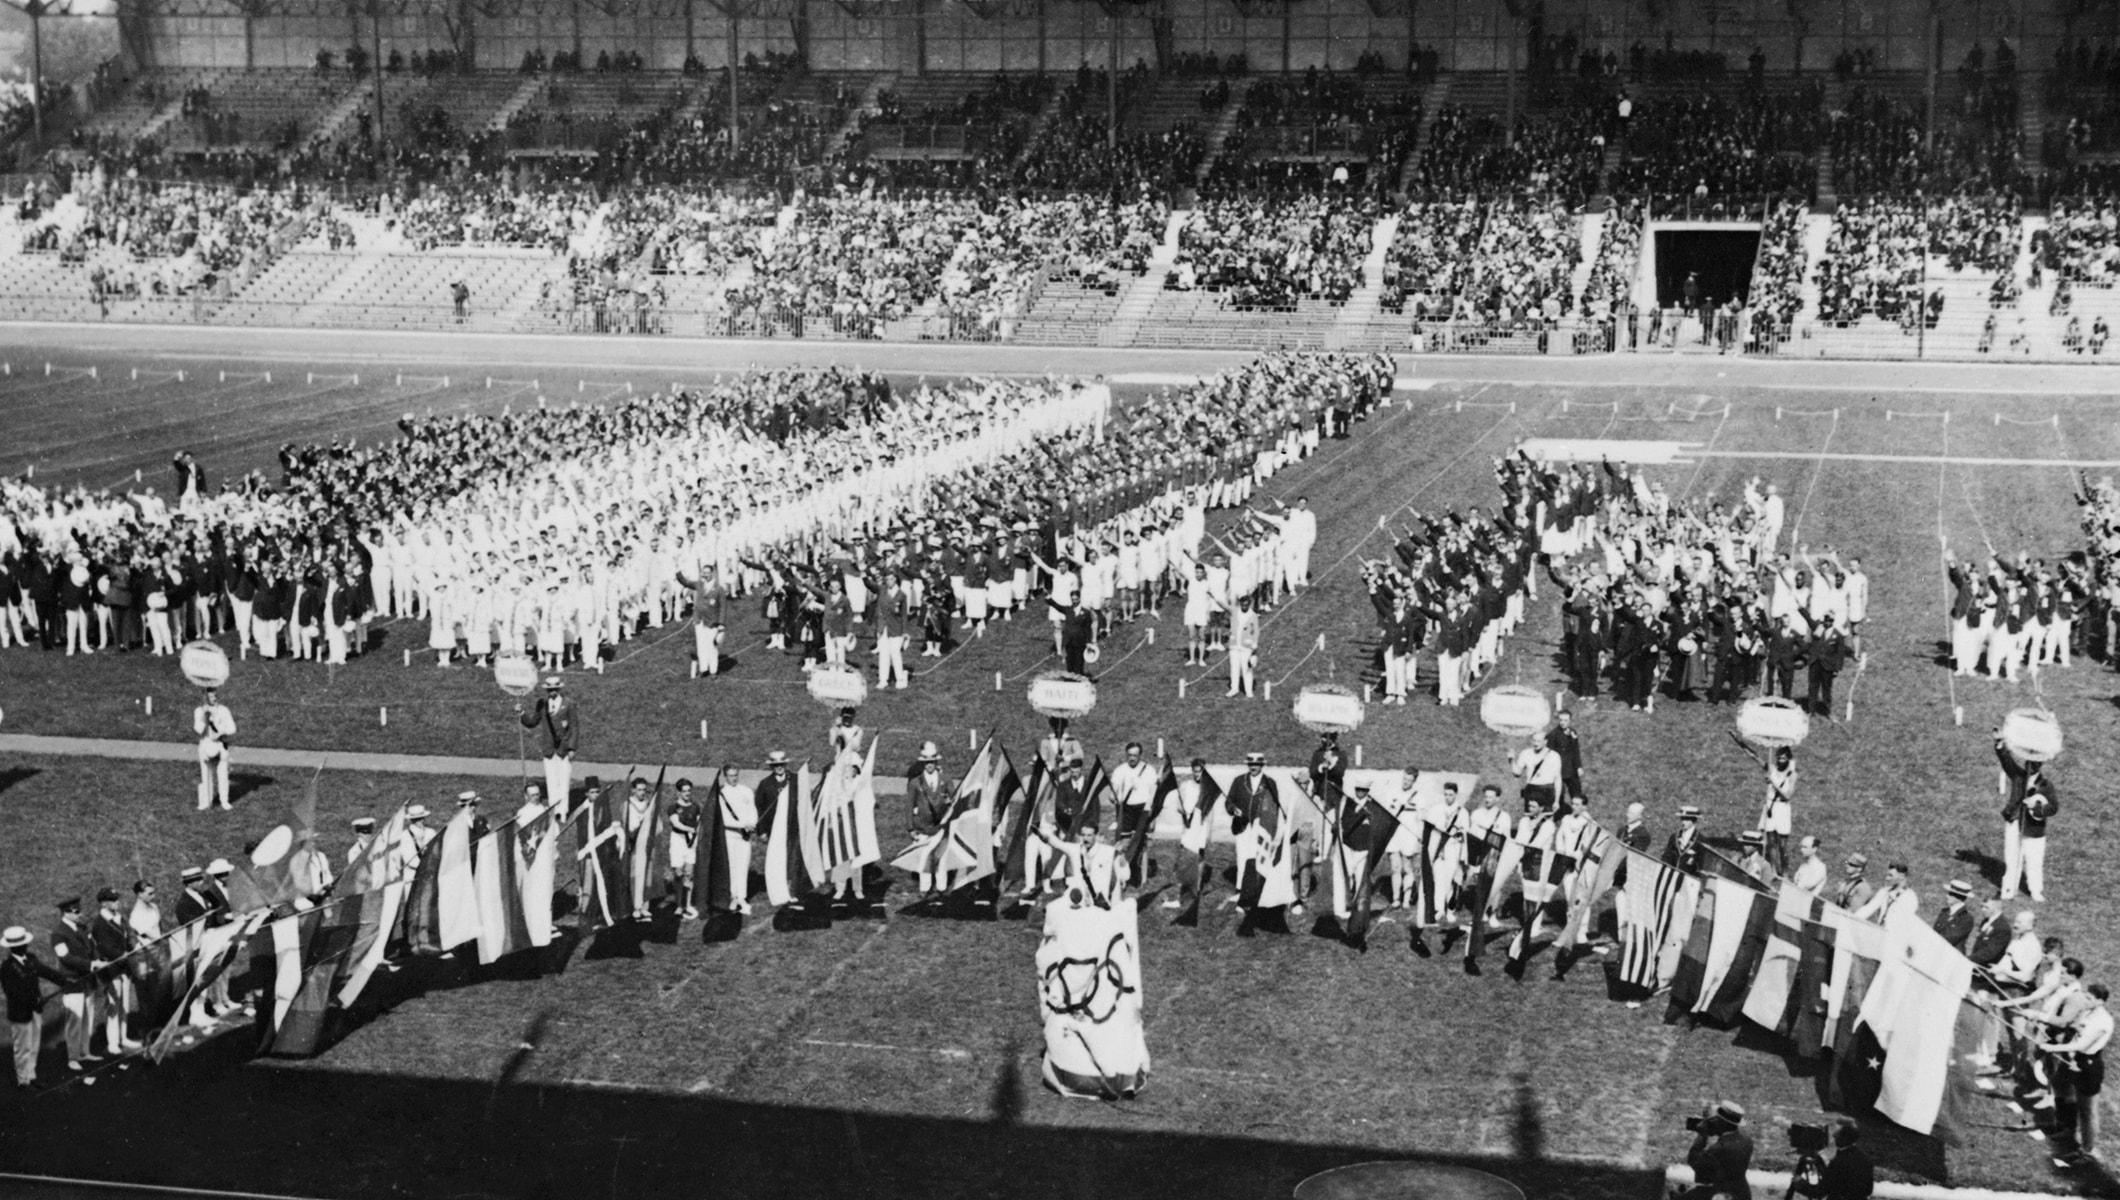 Opening ceremony of the first Winter Olympic Games, 1924, Chamonix, France